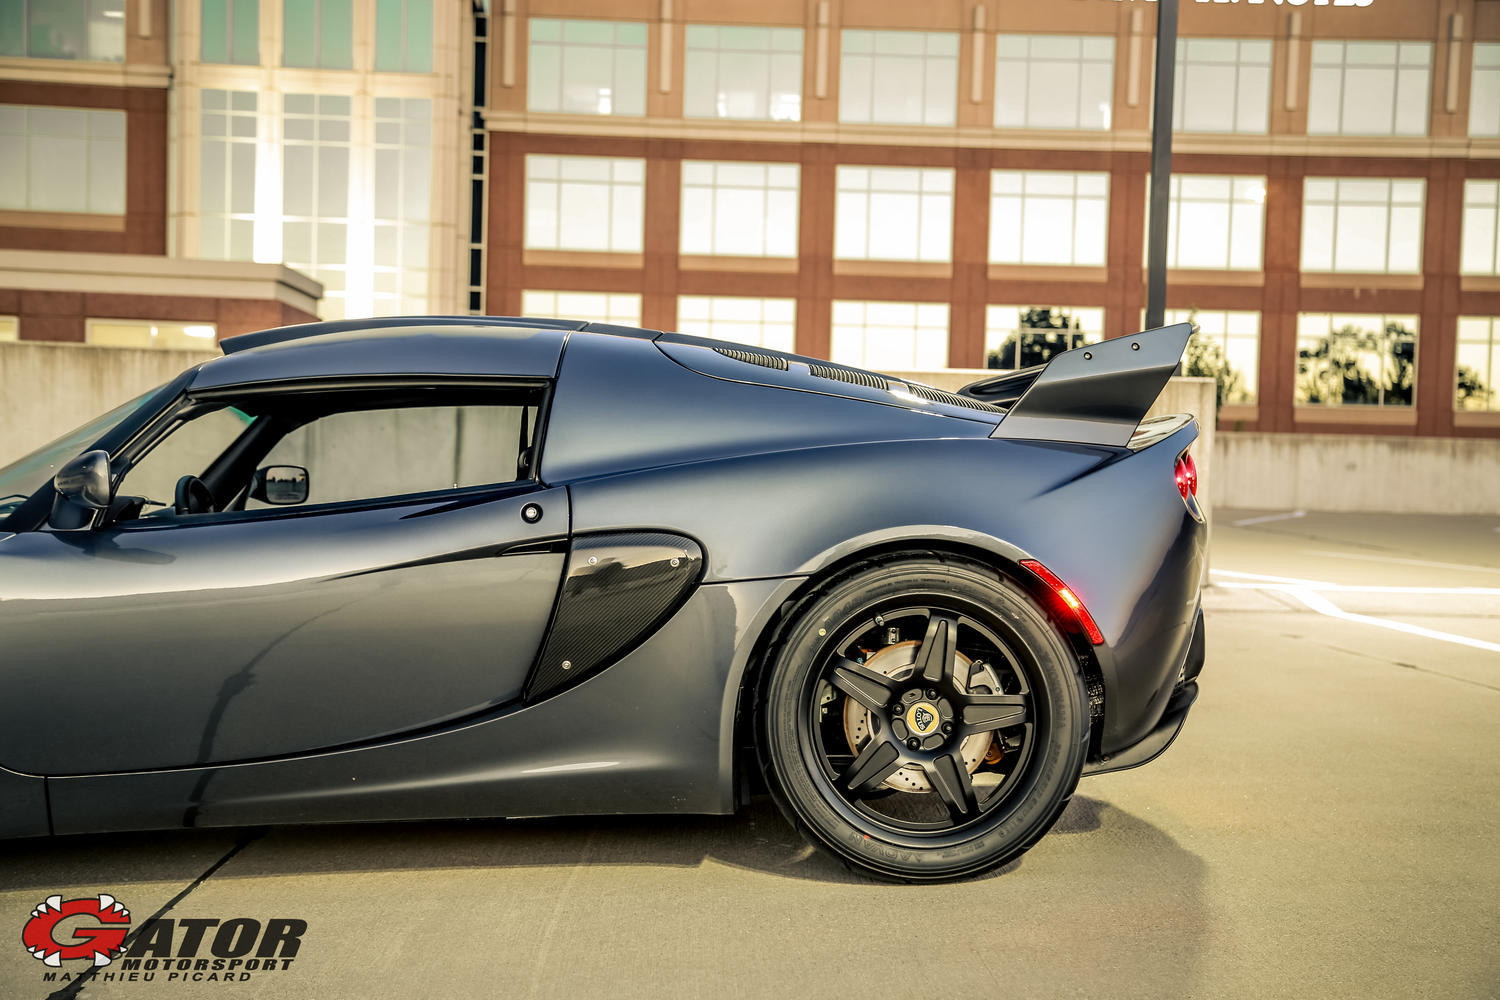 https://www.gatormotorsport.com/sites/default/files/styles/slide_car_wide/public/images/cars/preowned/IMG_0357.jpg?itok=-AAwwfCw